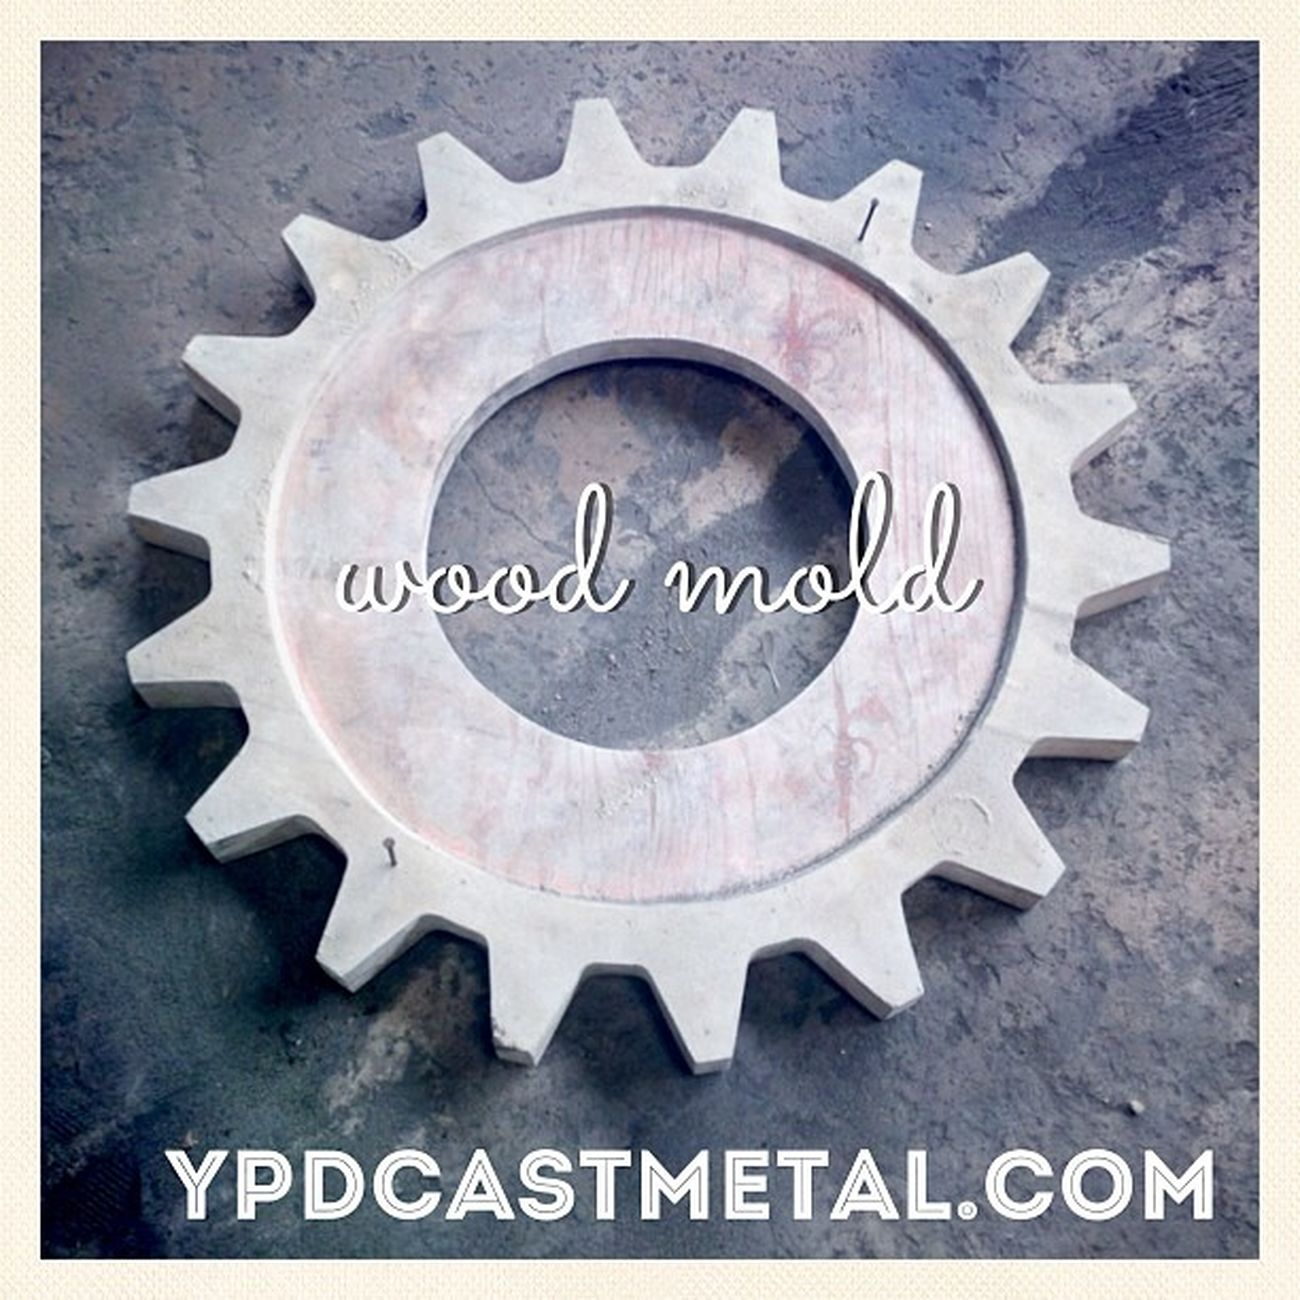 Sprocket wood mold!! Sprocket Mold Woodmold Ypdcastmetal metalworking woodwork woodworking